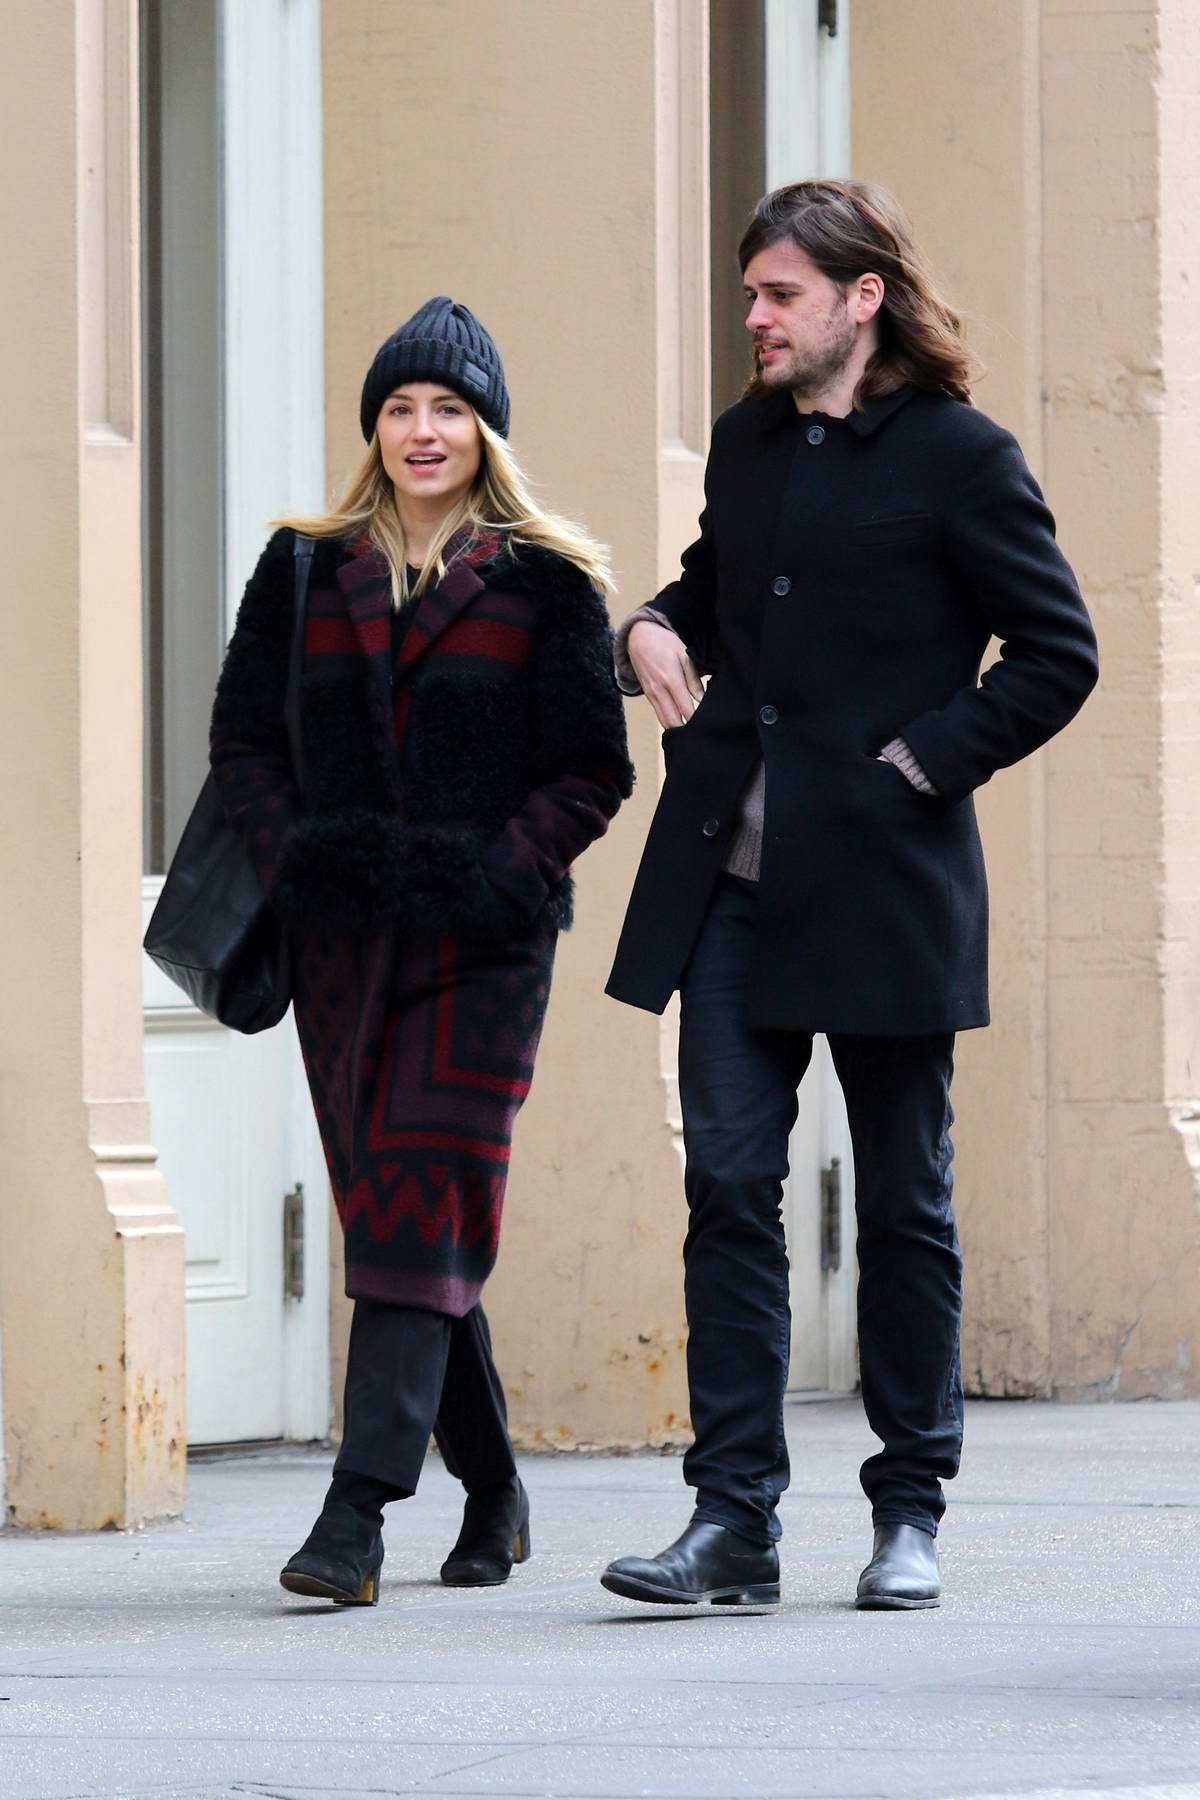 Dianna Agron and Winston Marshall steps out for a walk together in New York City